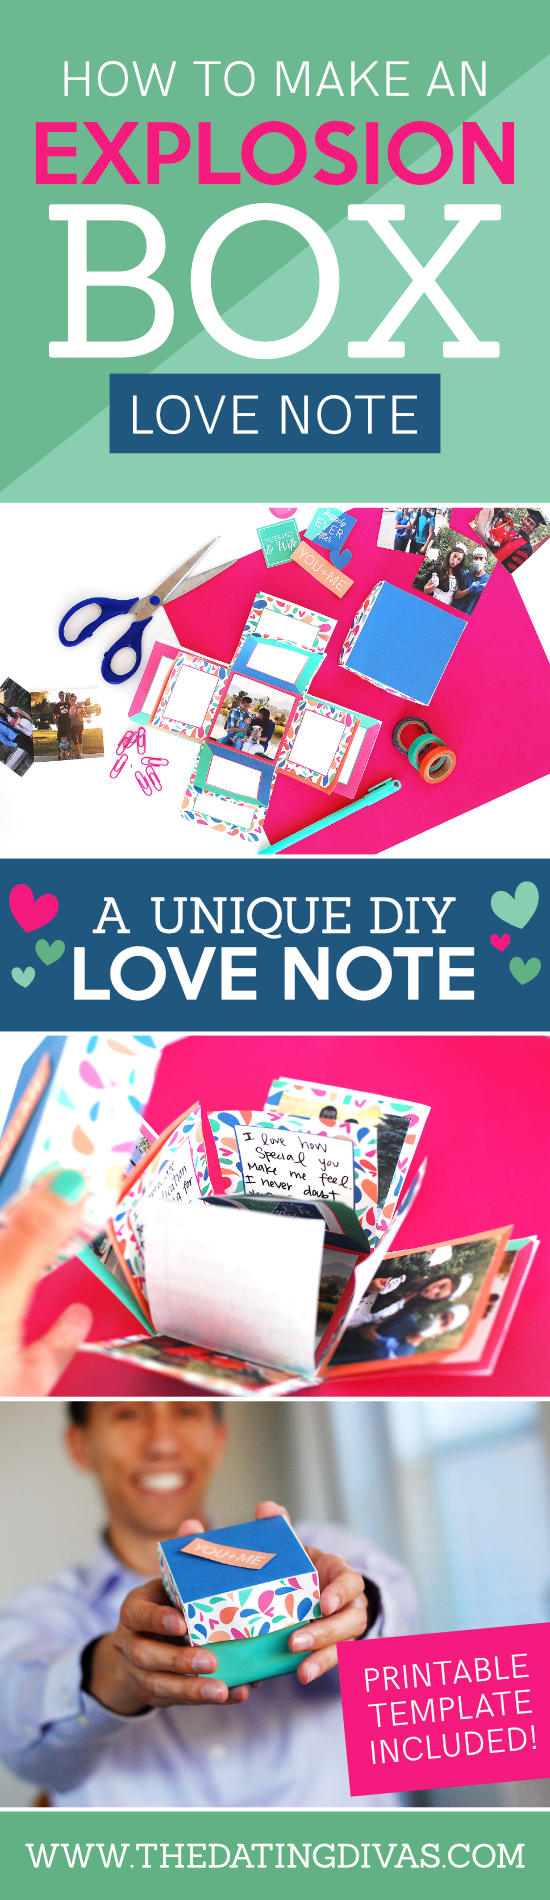 A super easy DIY explosion box tutorial with detailed instructions, ideas and even a printable template! An easy tutorial to learn how to make your own exploding box card and fill the 24+ flaps with pictures and personalized messages for your love! #explodingbox #explosionbox #Giftforboyfriend #giftforspouse #giftidea